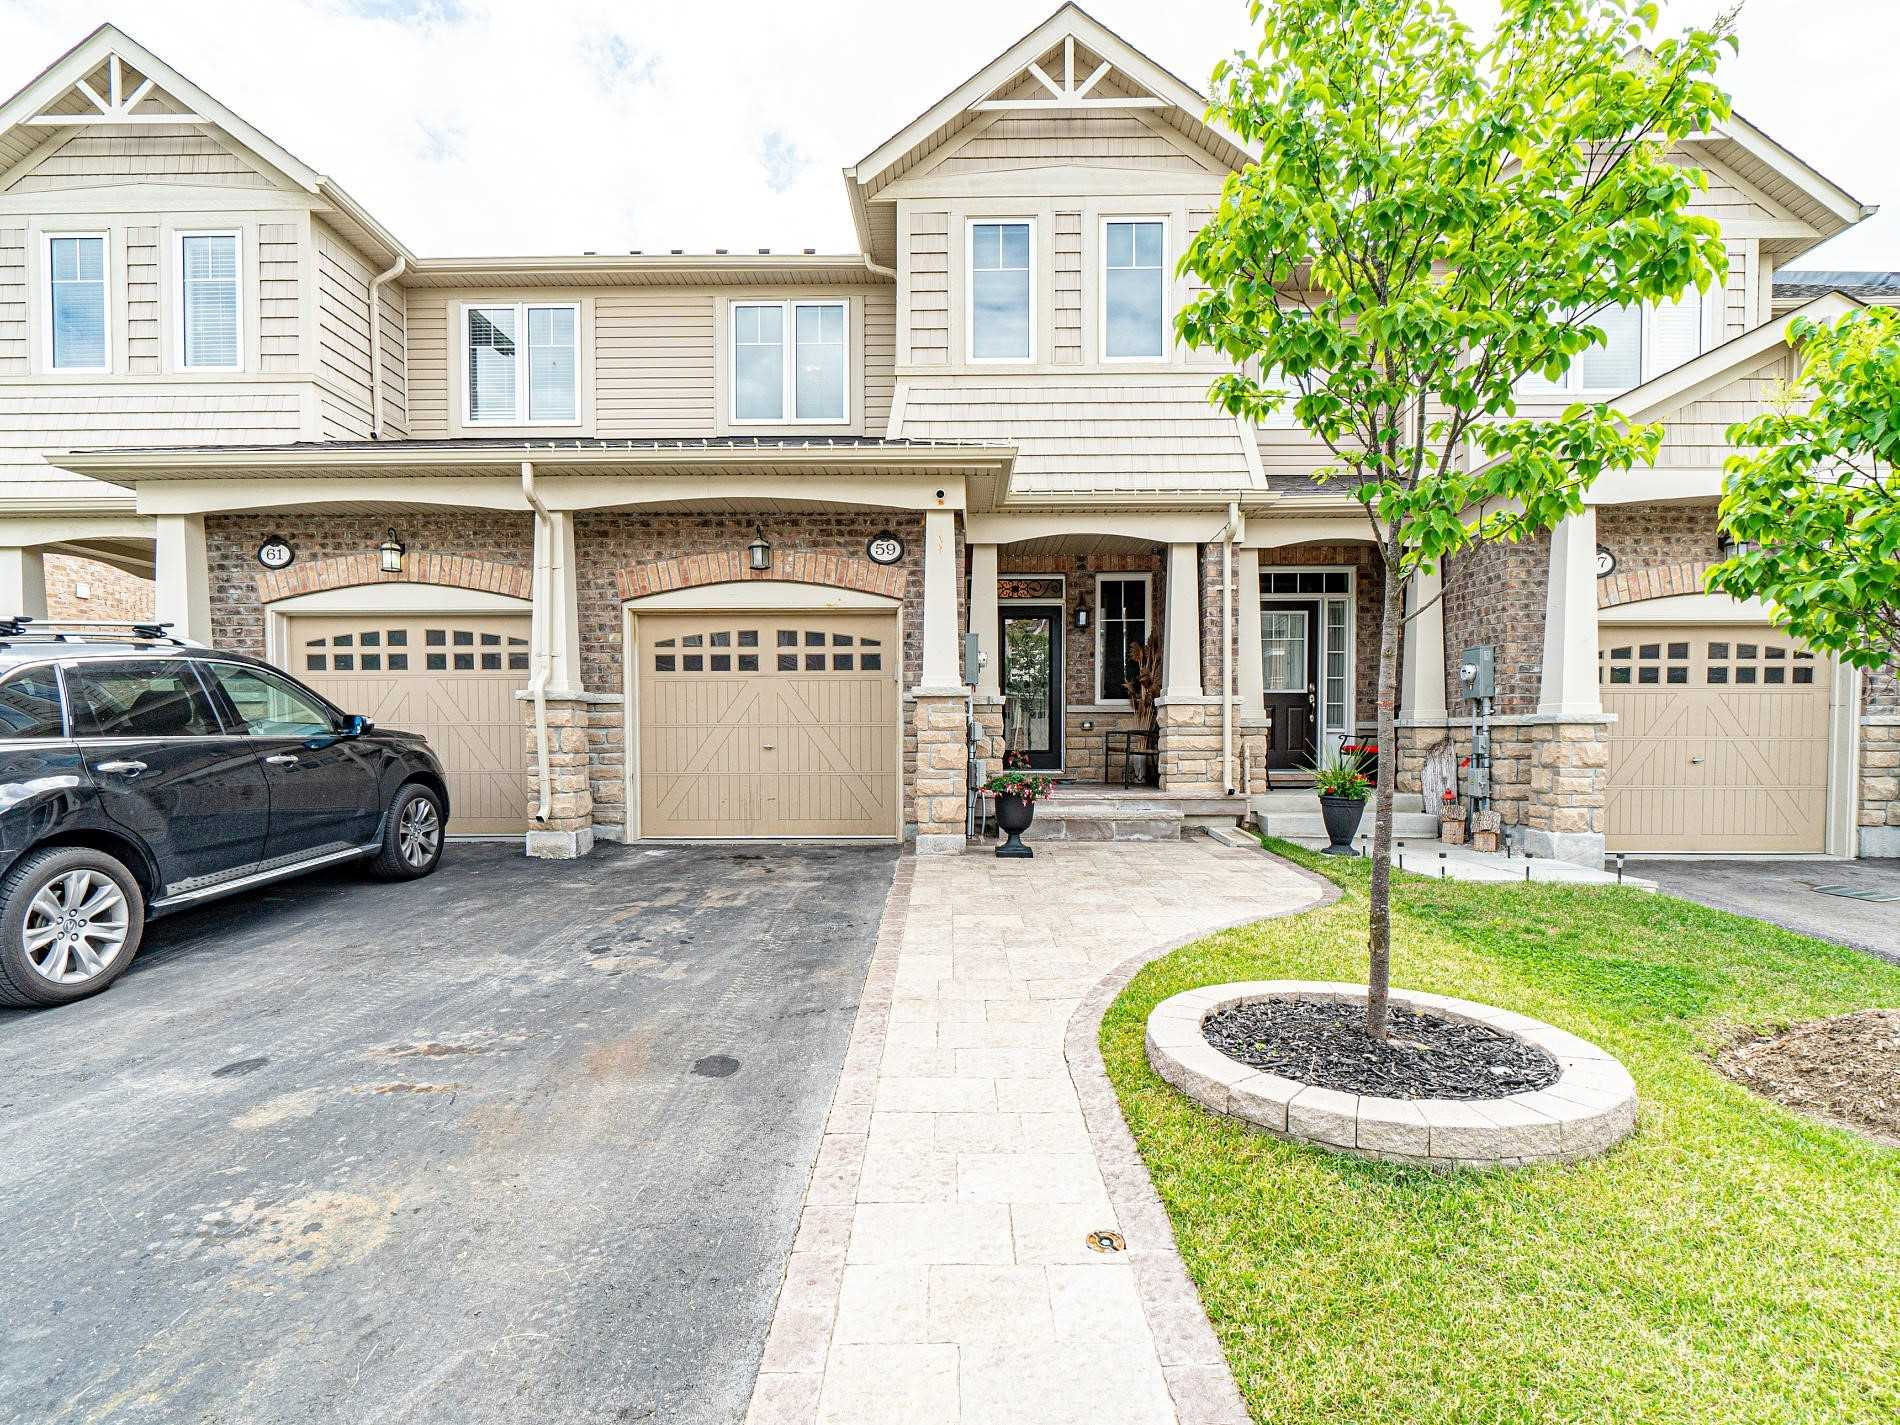 Immaculate Upgraded & Absolutely Gorgeous 3 Bedroom Freehold Townhouse In The Most Sought After Southfield Community Of Rural Caledon.  Hardwood Floors On The Main Floor, Surround Sound Speakers, Oak Staircase, Brand New Light Fixtures, Custom Made Fabric Blinds, Upgraded Kitchen With High-End Black Stainless Steel Appliances, Double Deeper Sink, Maple Cabinets, Quartz Counter-Top, Upgraded Chinguacousy Tub In Master Bedroom, Laundry On Upper Floor....